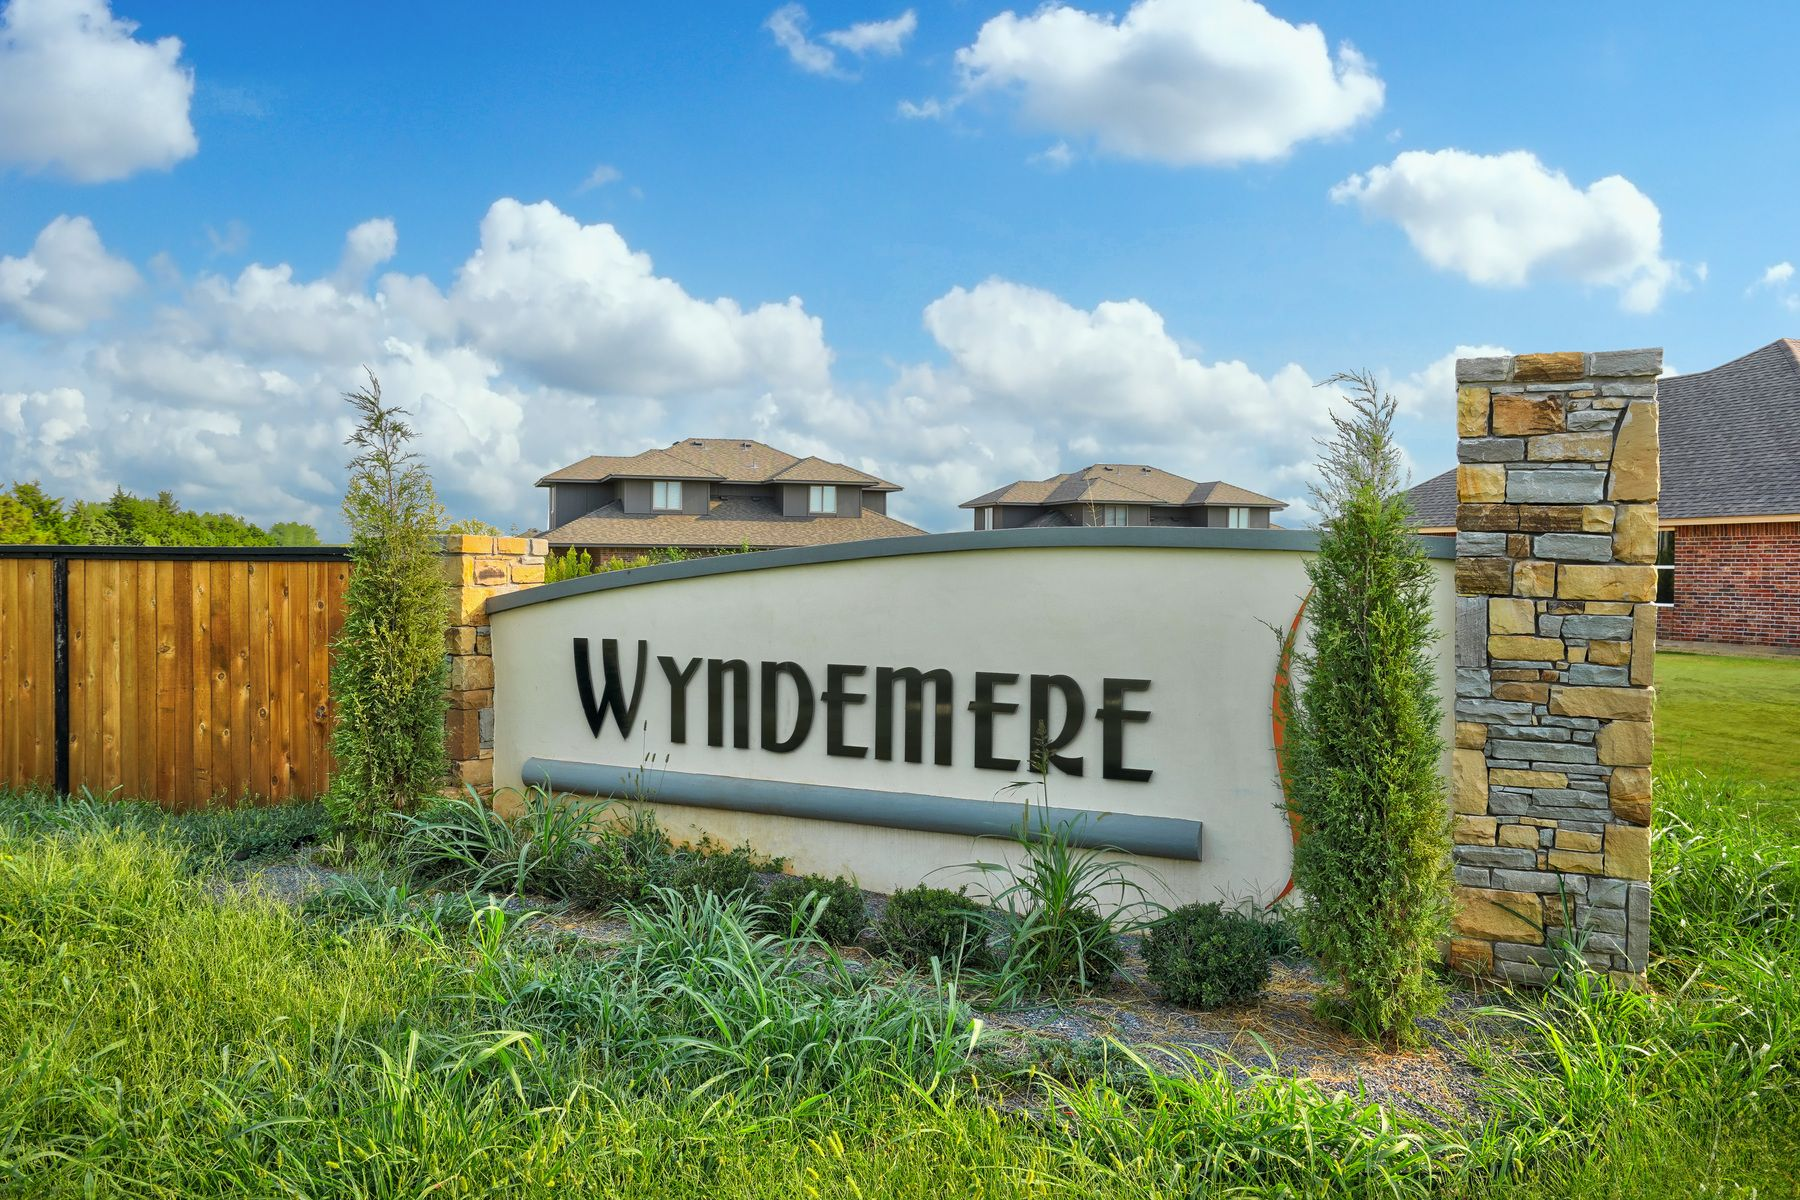 'Wyndemere' by LGI Homes in Oklahoma City